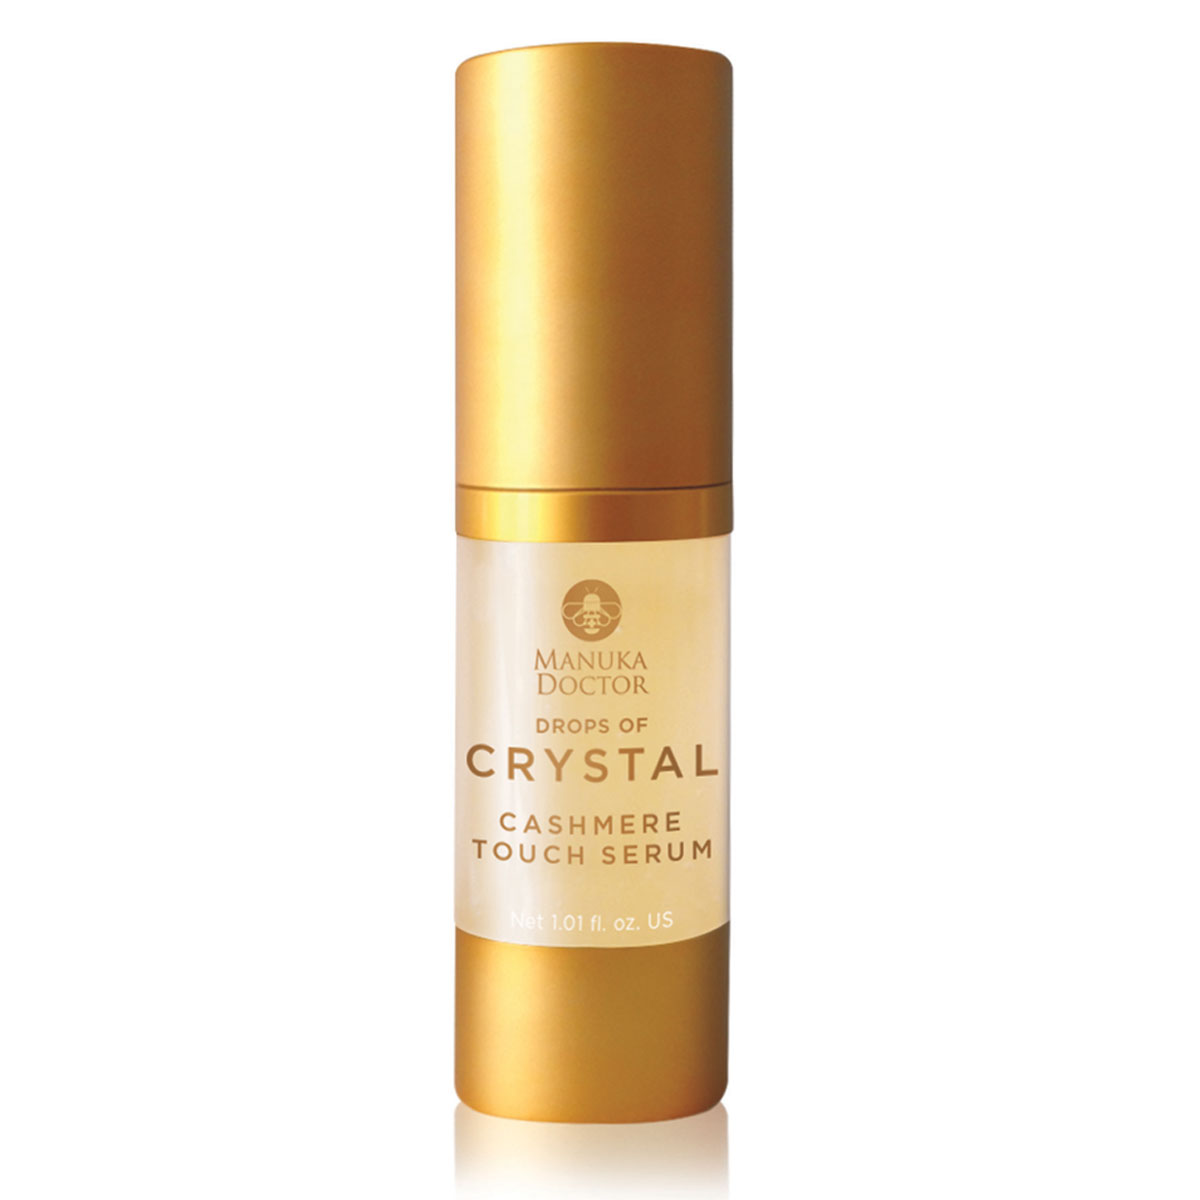 Drops-of-Crystal-Cashmere-Touch-Serum-1200.jpg